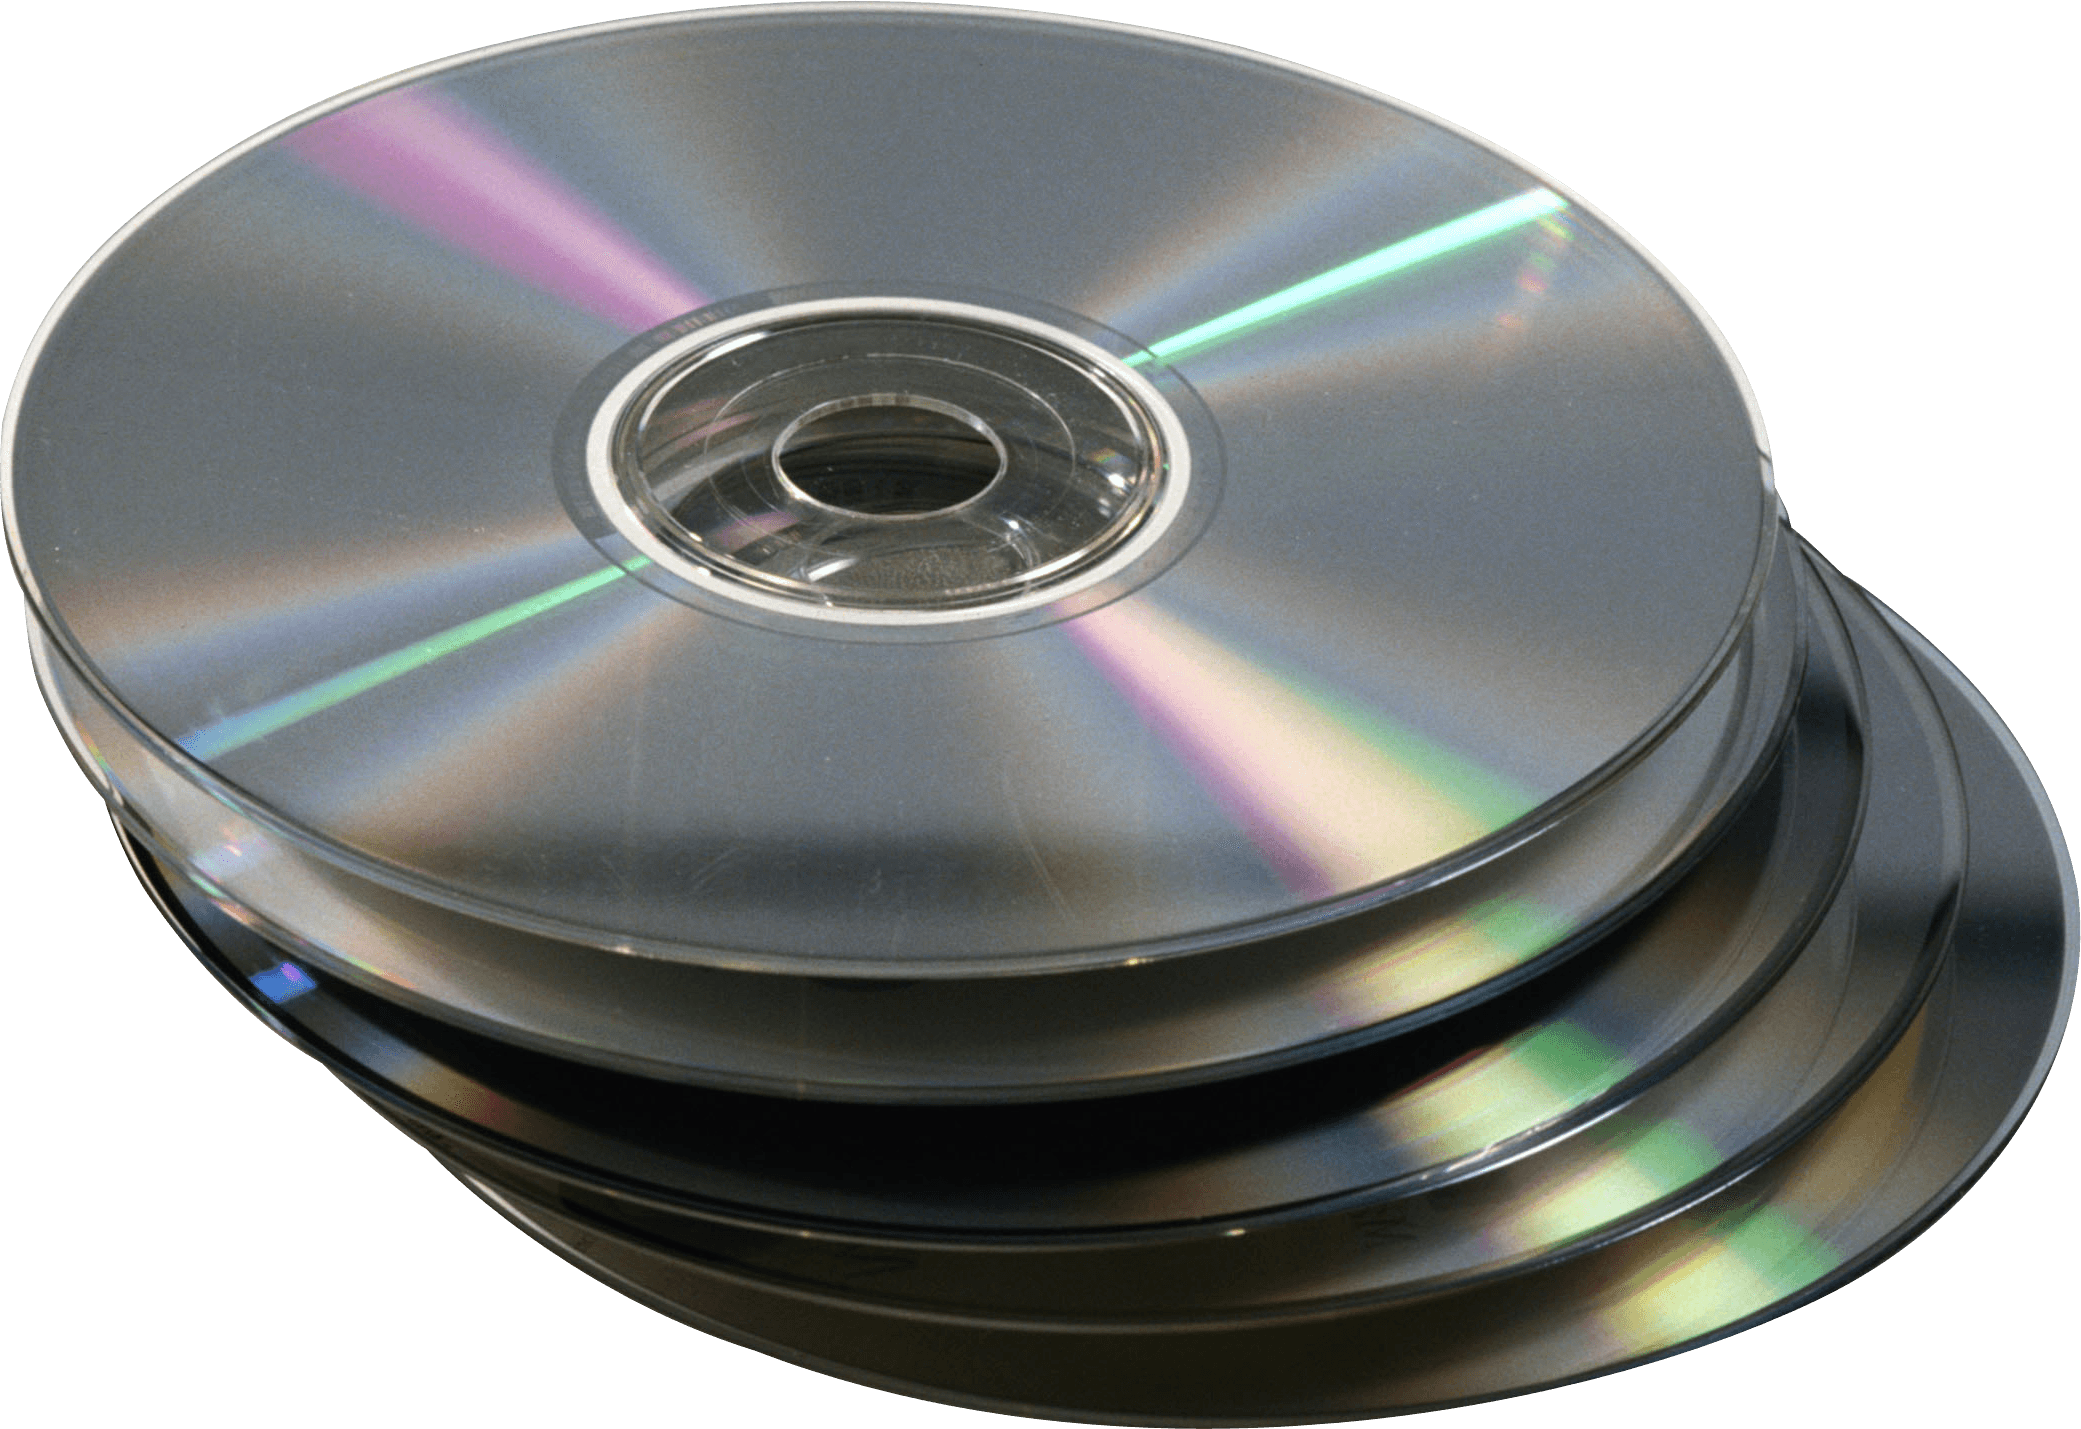 download compact dvd disk png image png image #18301